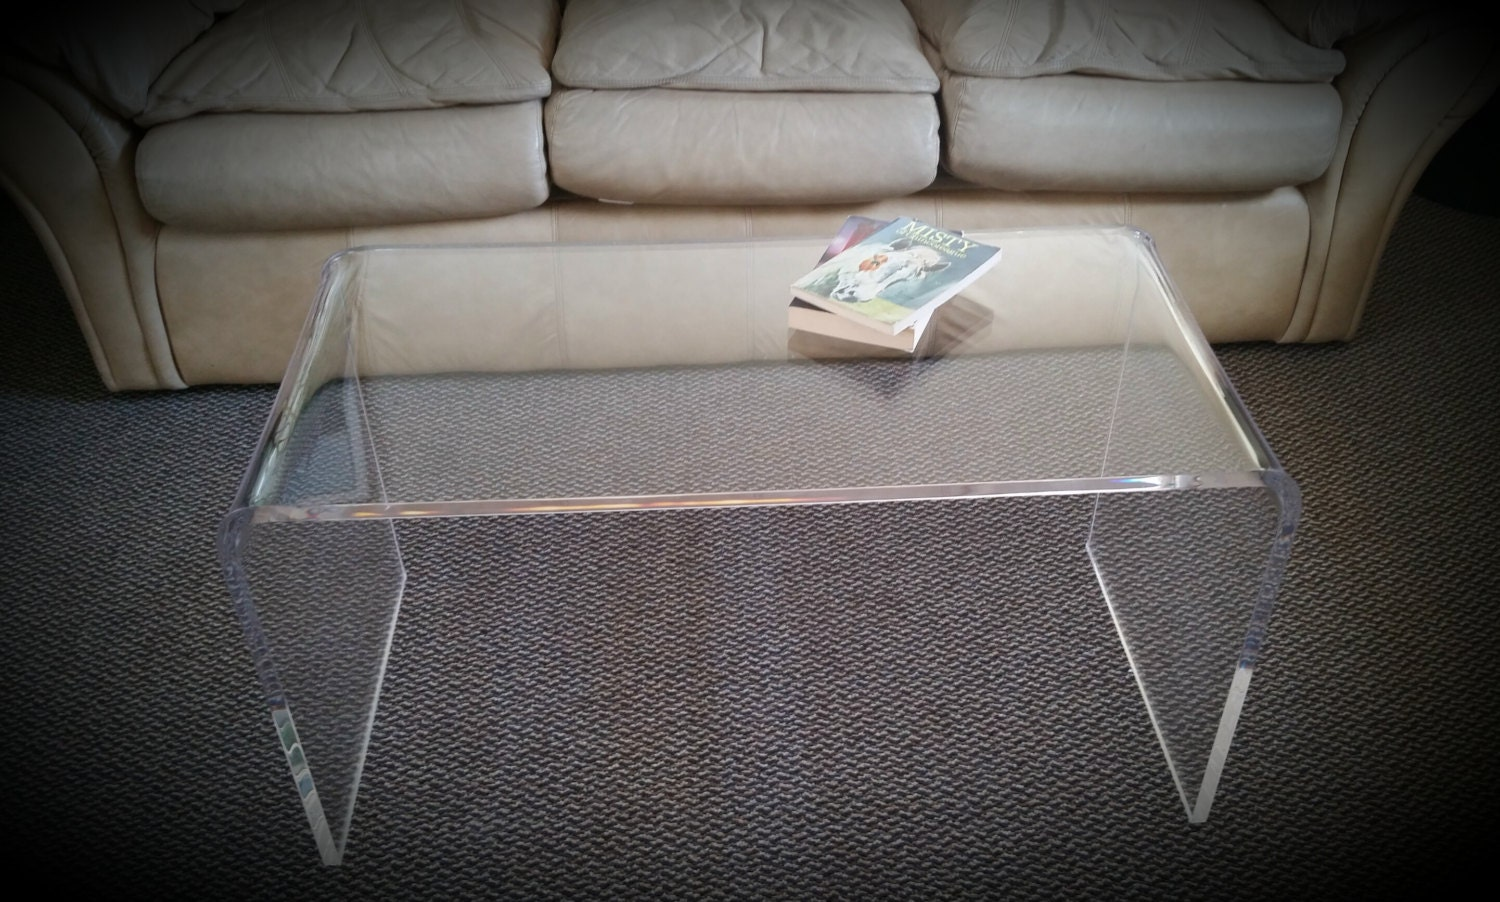 Clear acrylic lucite kira waterfall style coffee Acrylic clear coffee table